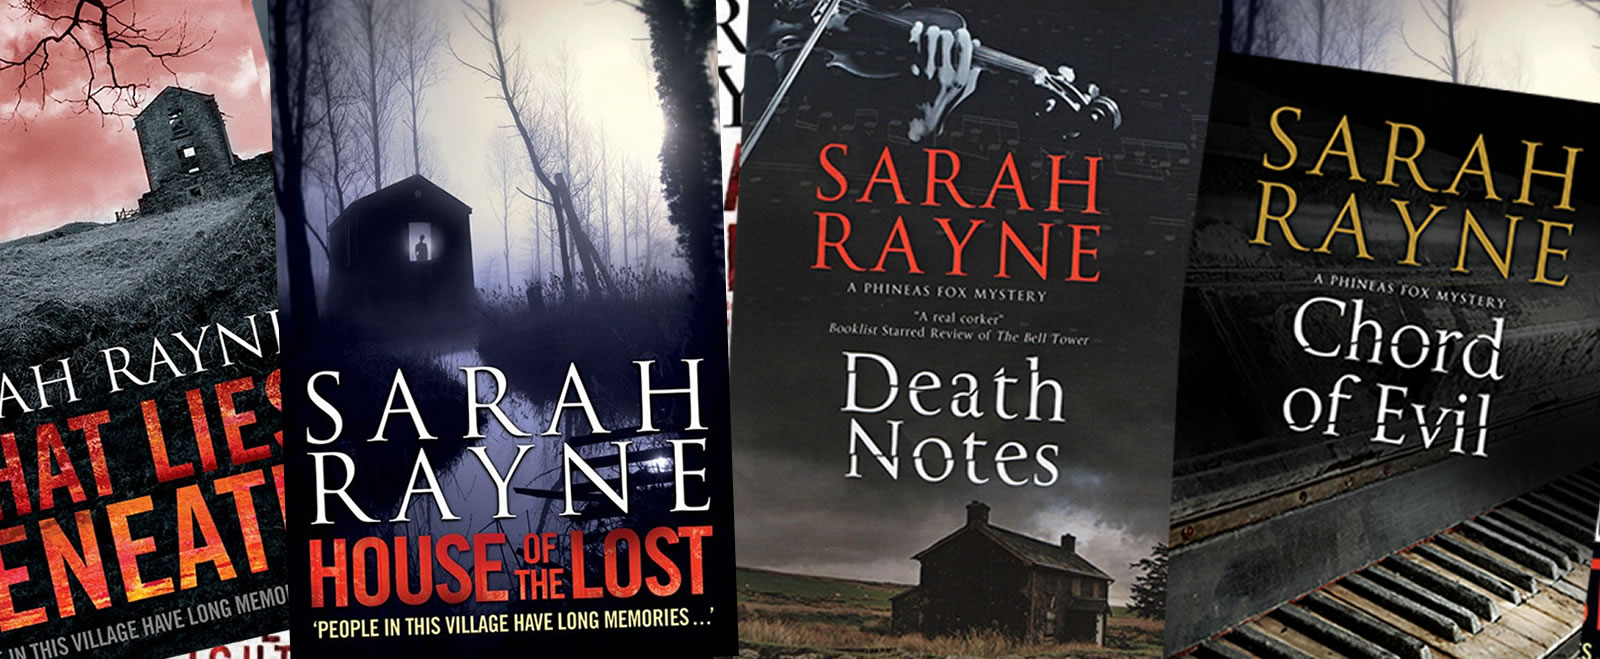 Books by Sarah Rayne